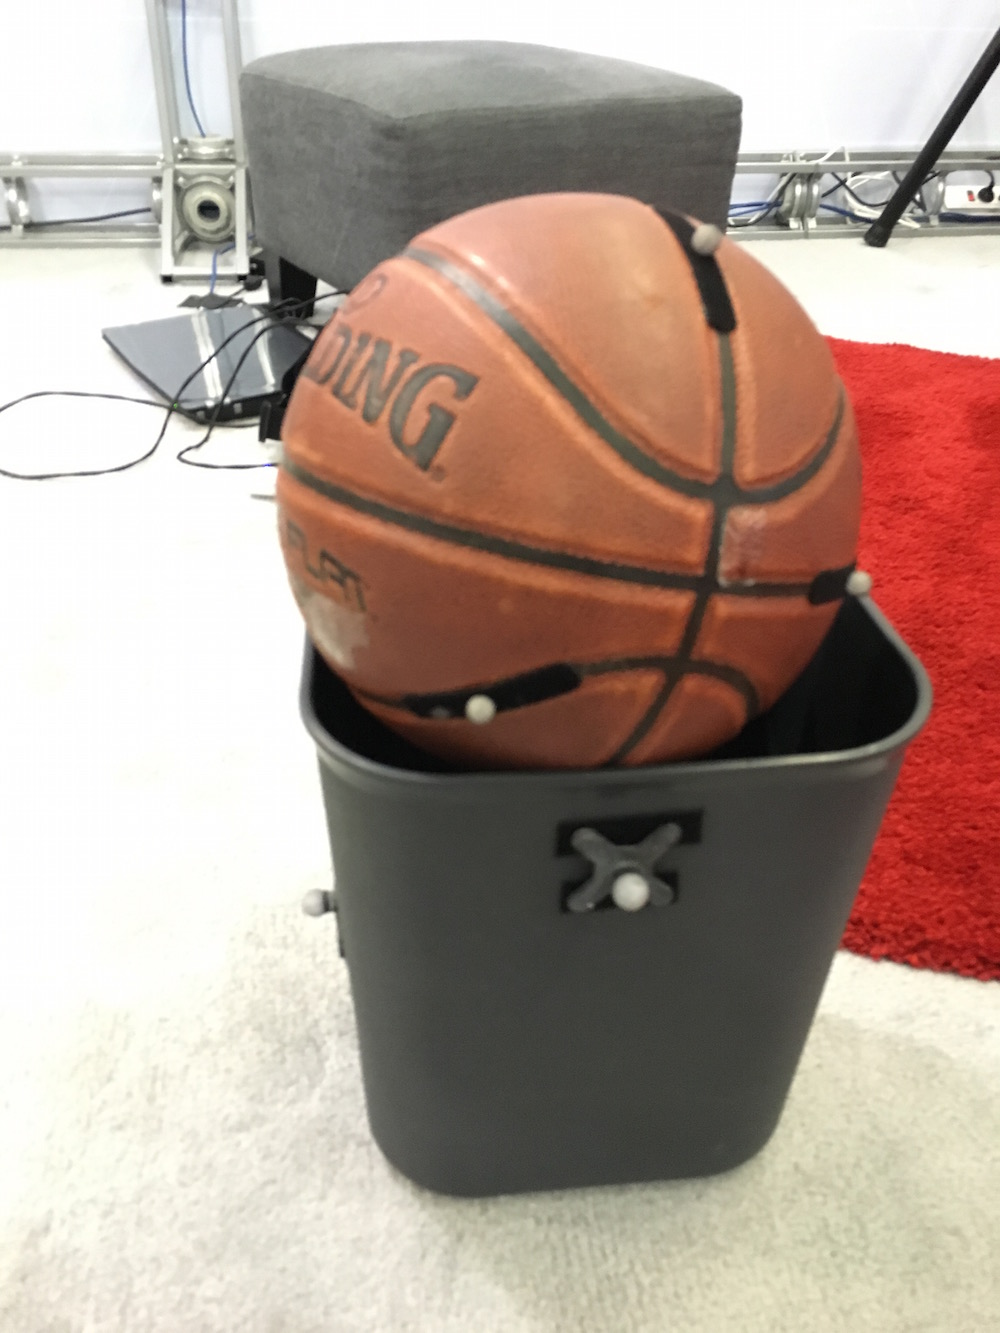 A basketball and trash can that are being brought into VR by Project Alice.